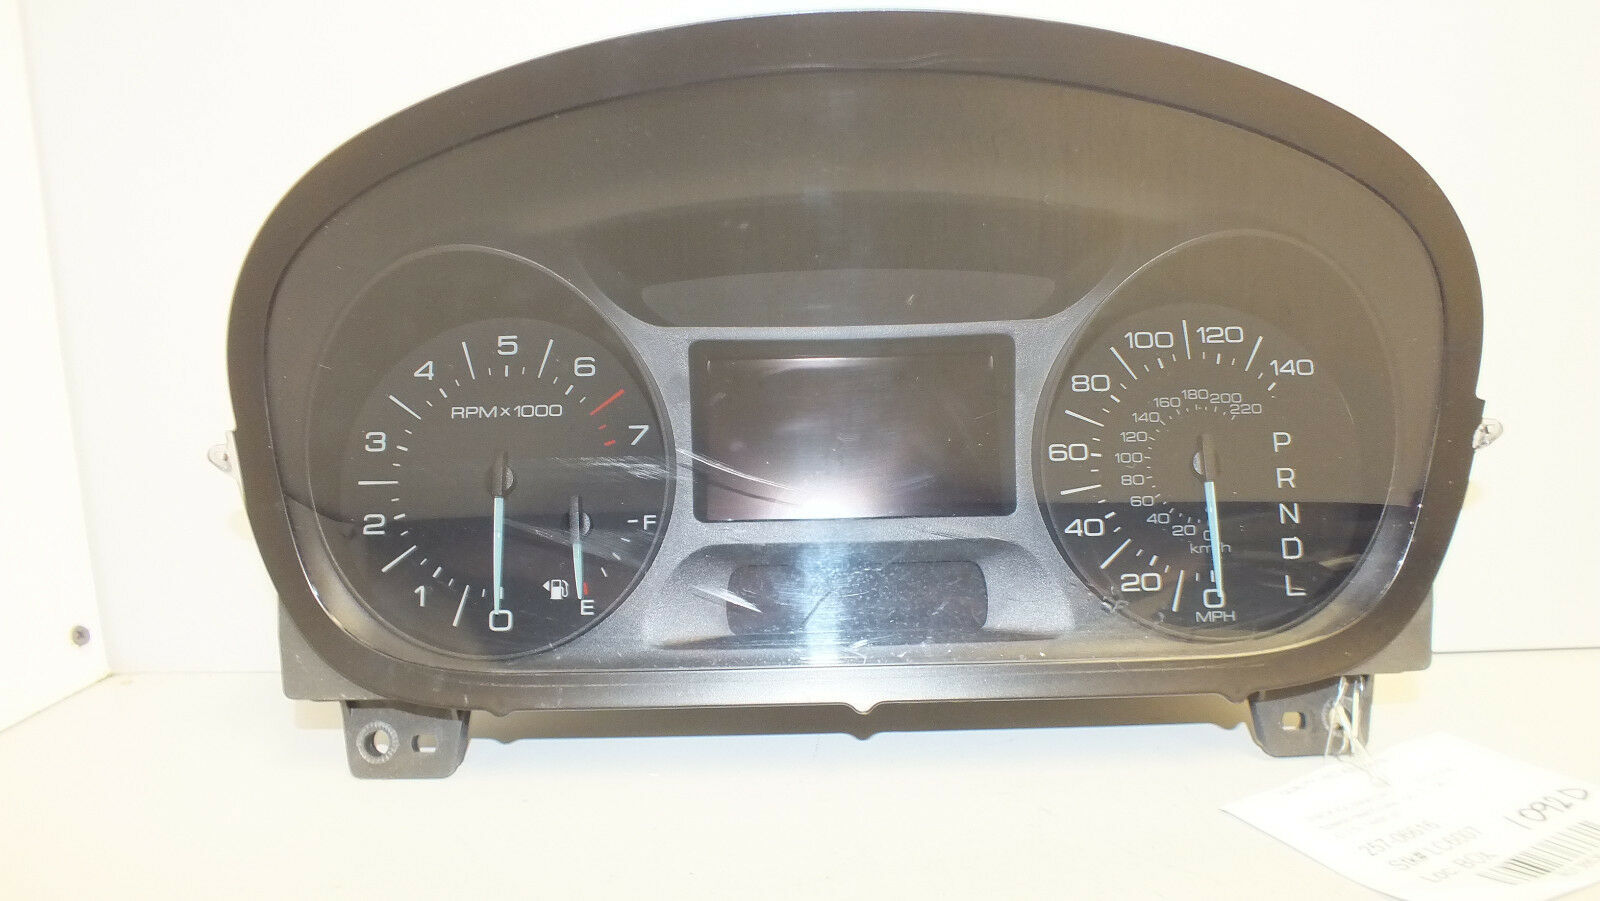 Primary image for 11 2011 FORD EDGE SE 3.5L INSTRUMENT CLUSTER BT4T-10849-AK (74k miles)#1092D